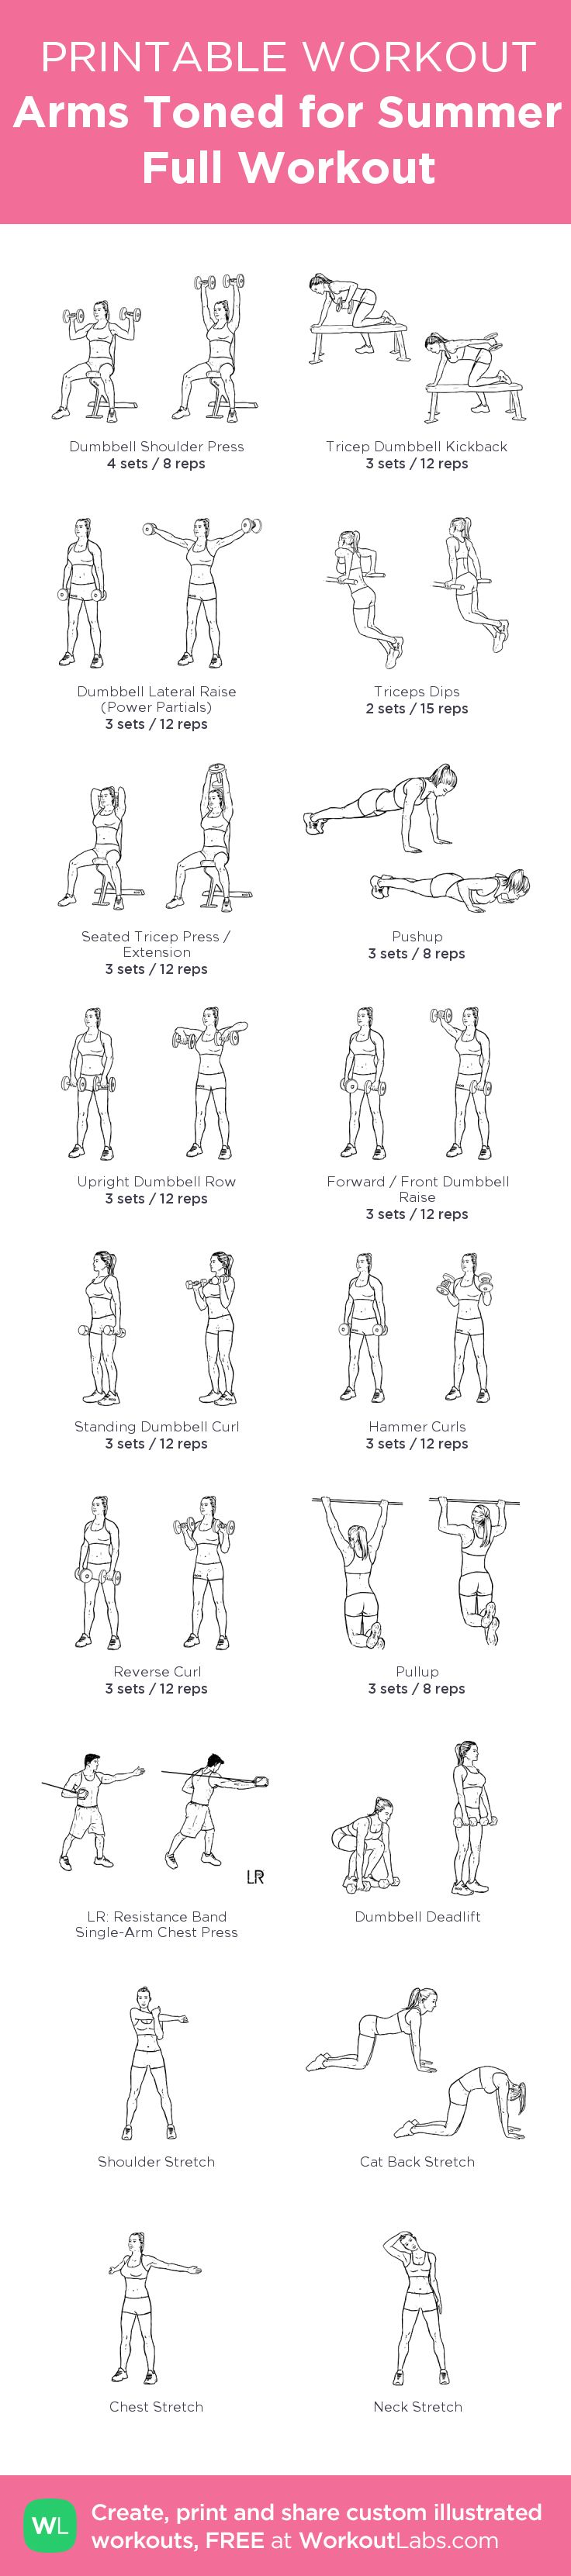 With 6 Triceps &shoulders workouts, followed by 6 Biceps &Back workouts, this makes a full upper body workout routines, at home or at the Gym ! my custom printable workout by @WorkoutLabs #workoutlabs #customworkout